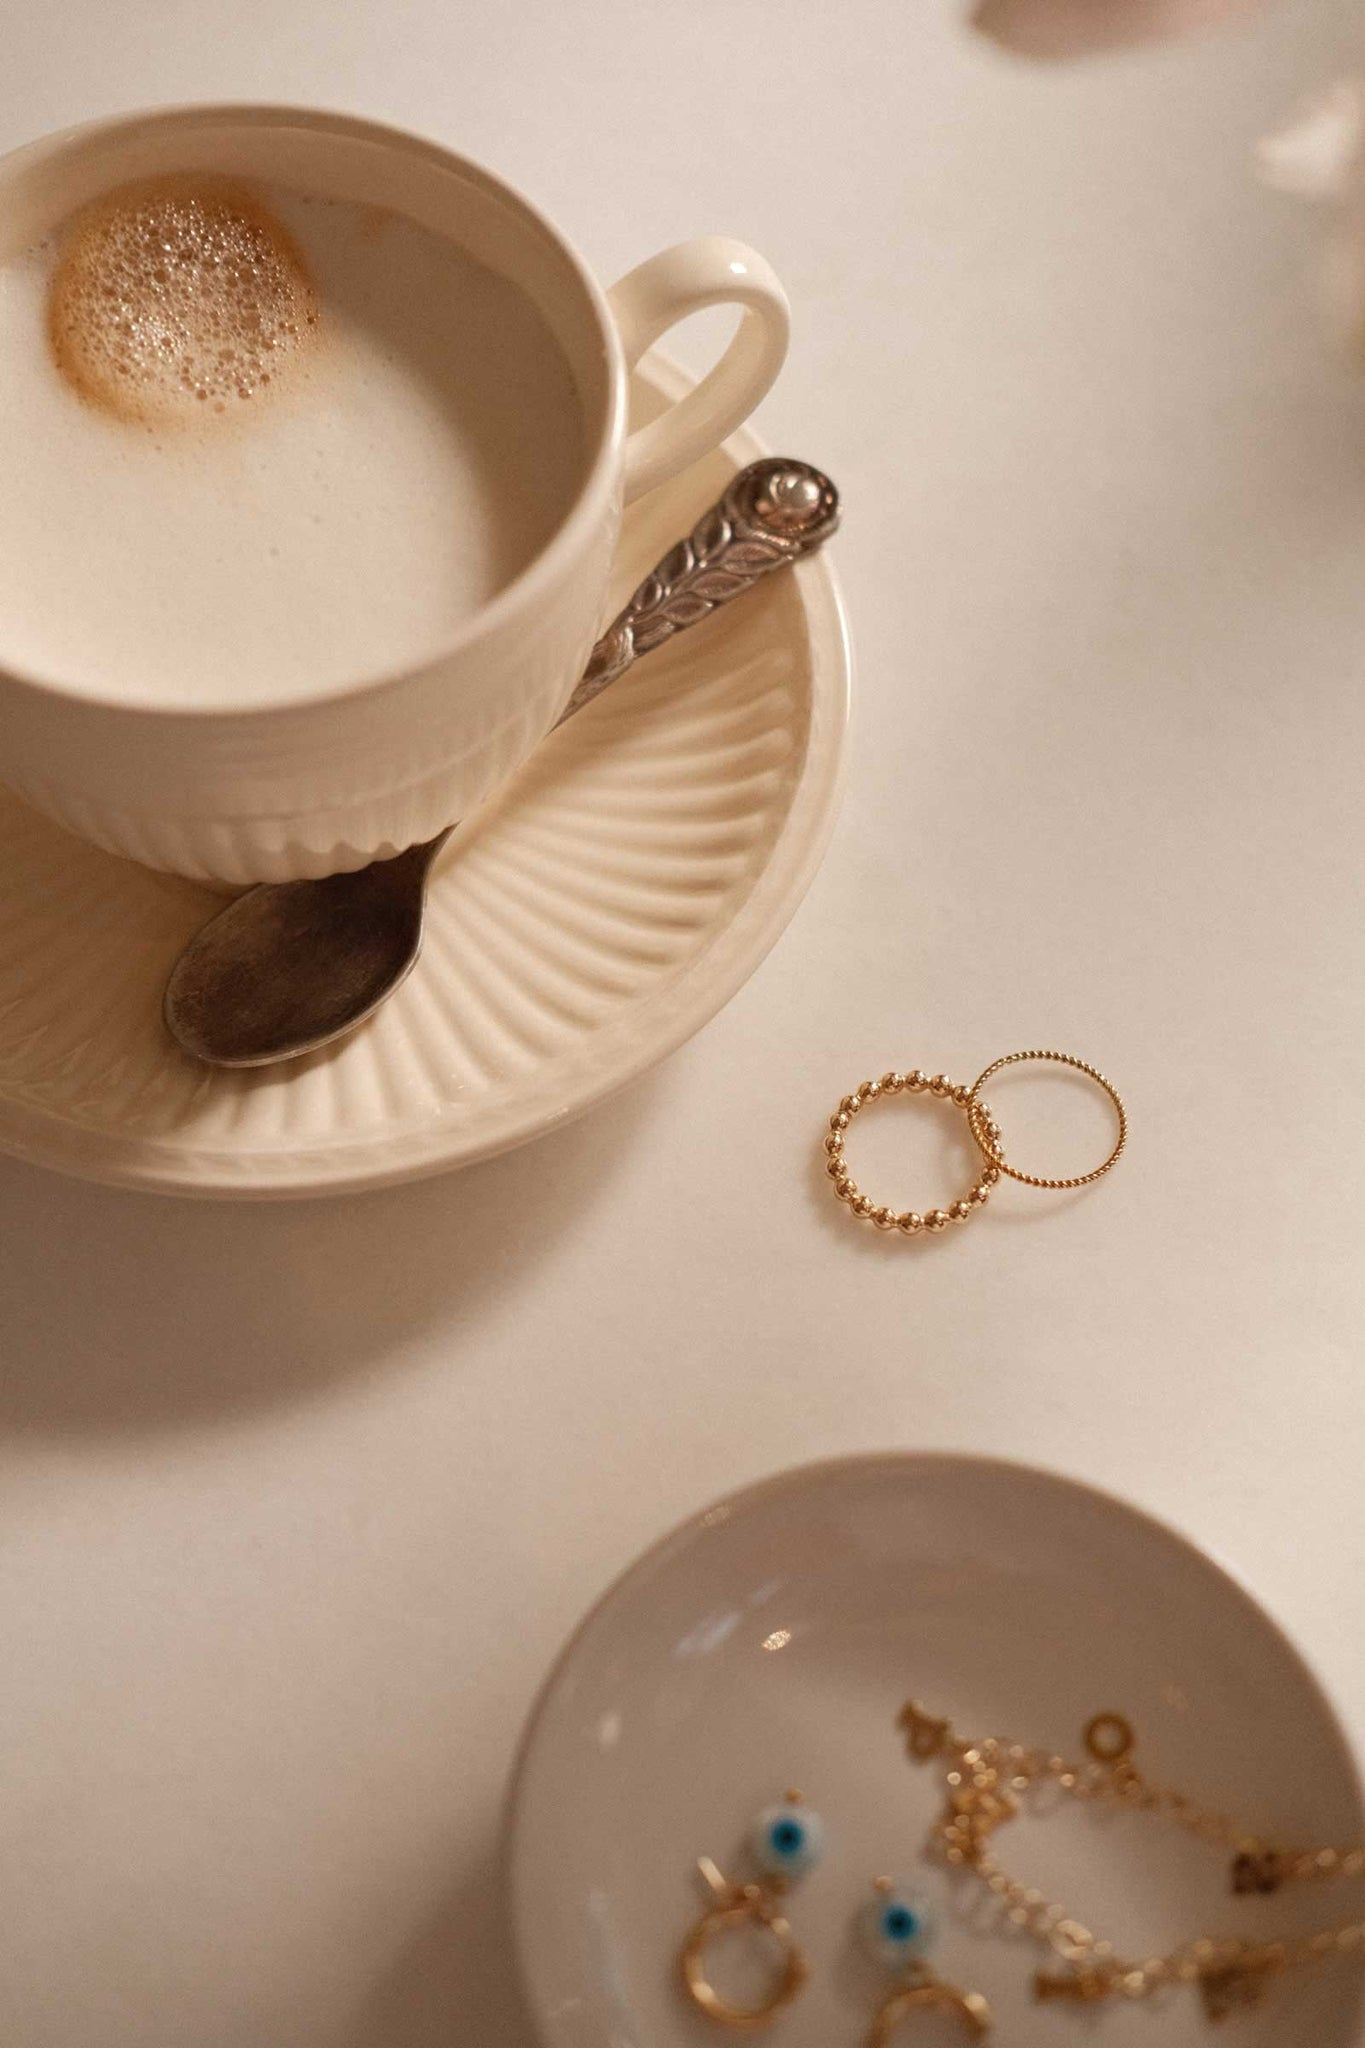 a set of gold filled finger rings lying on the kitchen table